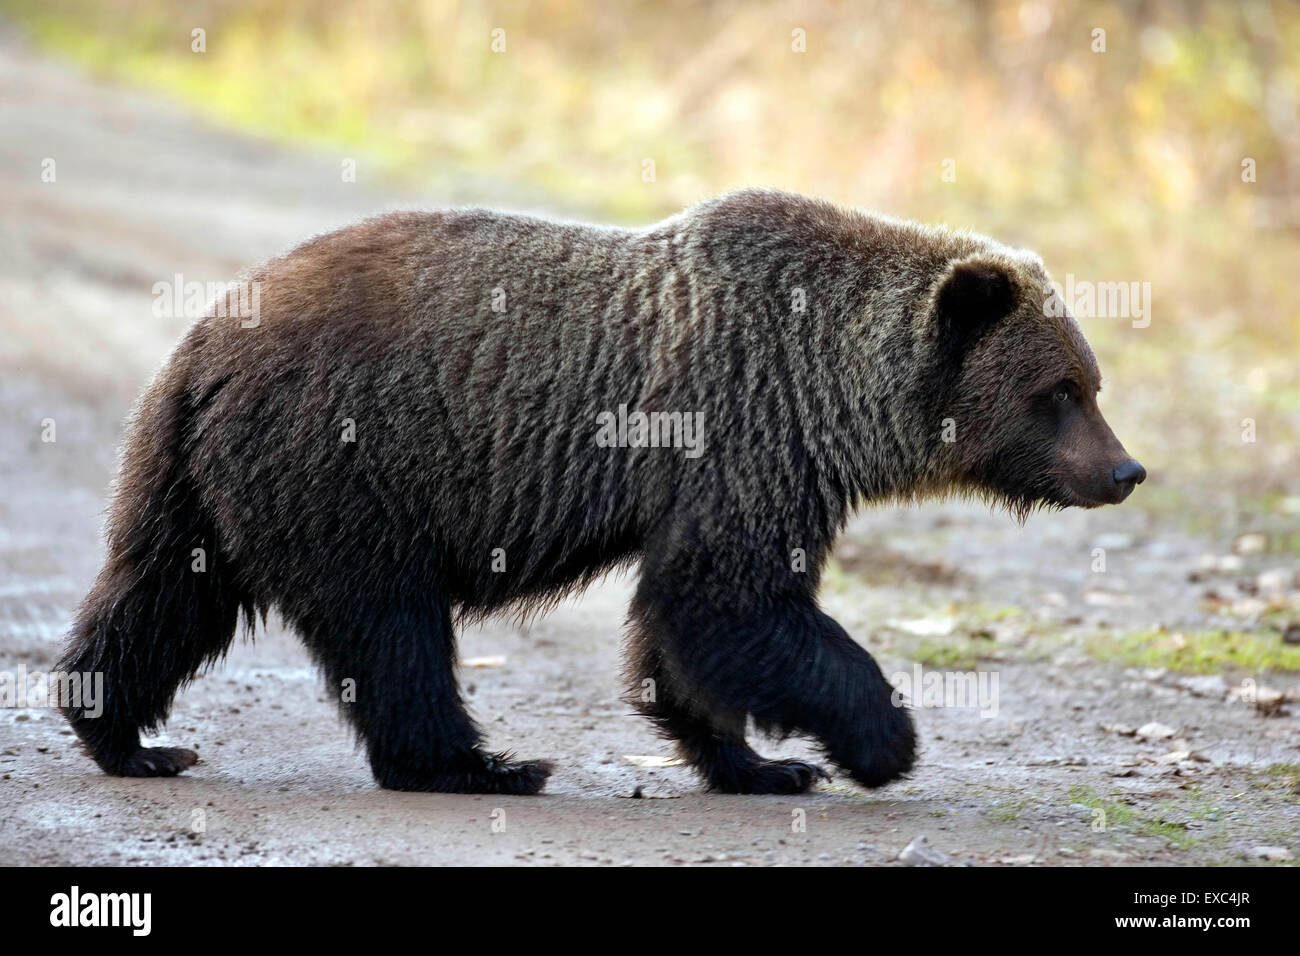 Grizzly Bear, young adult, three years old, crossing forest road - Stock Image